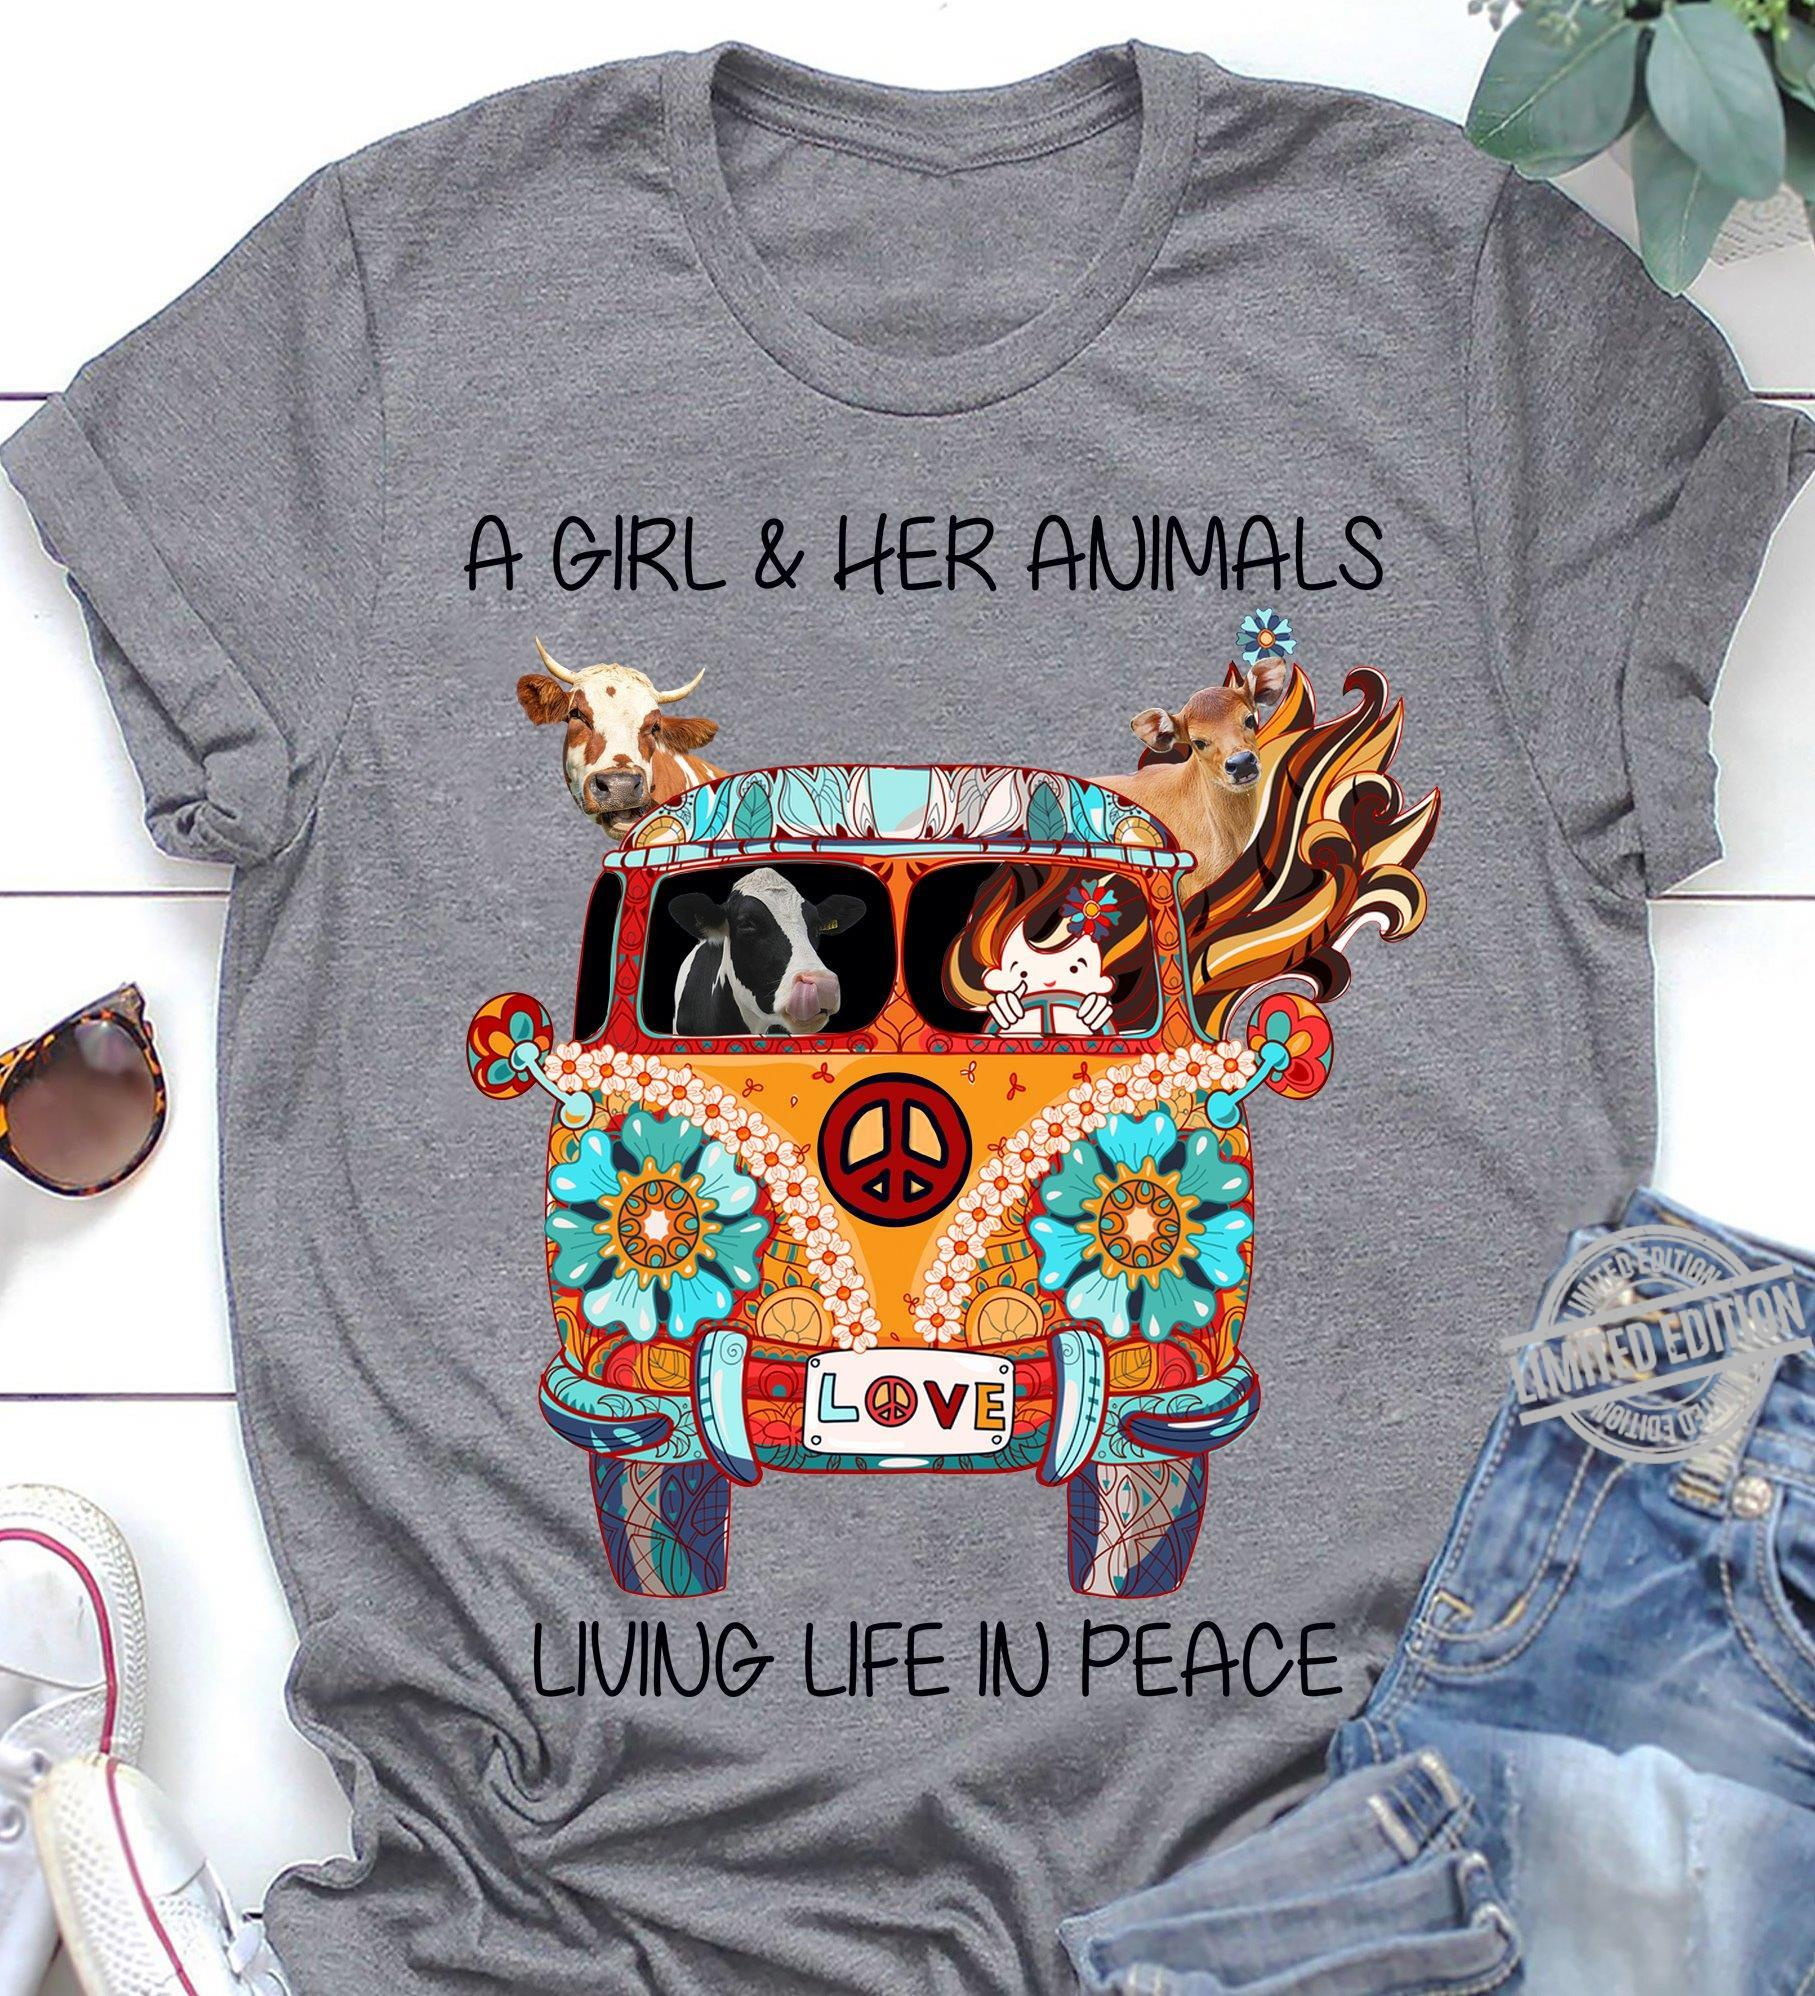 A Girl & Her Animals Living Life In Peace Shirt